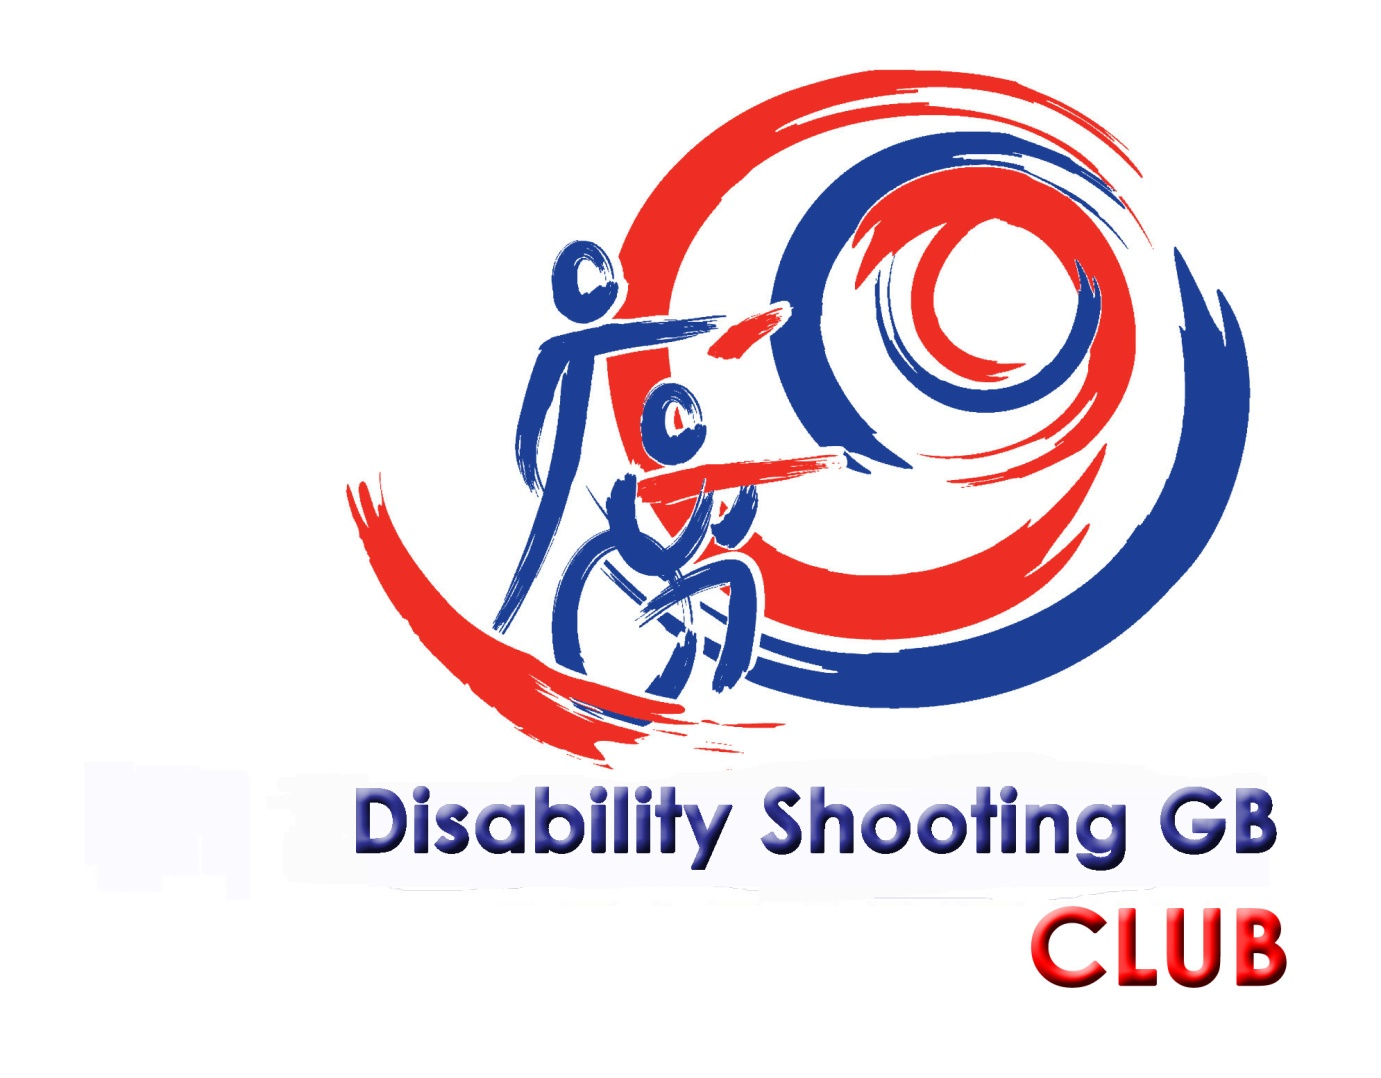 Disability Shooting Great Britain Club logo